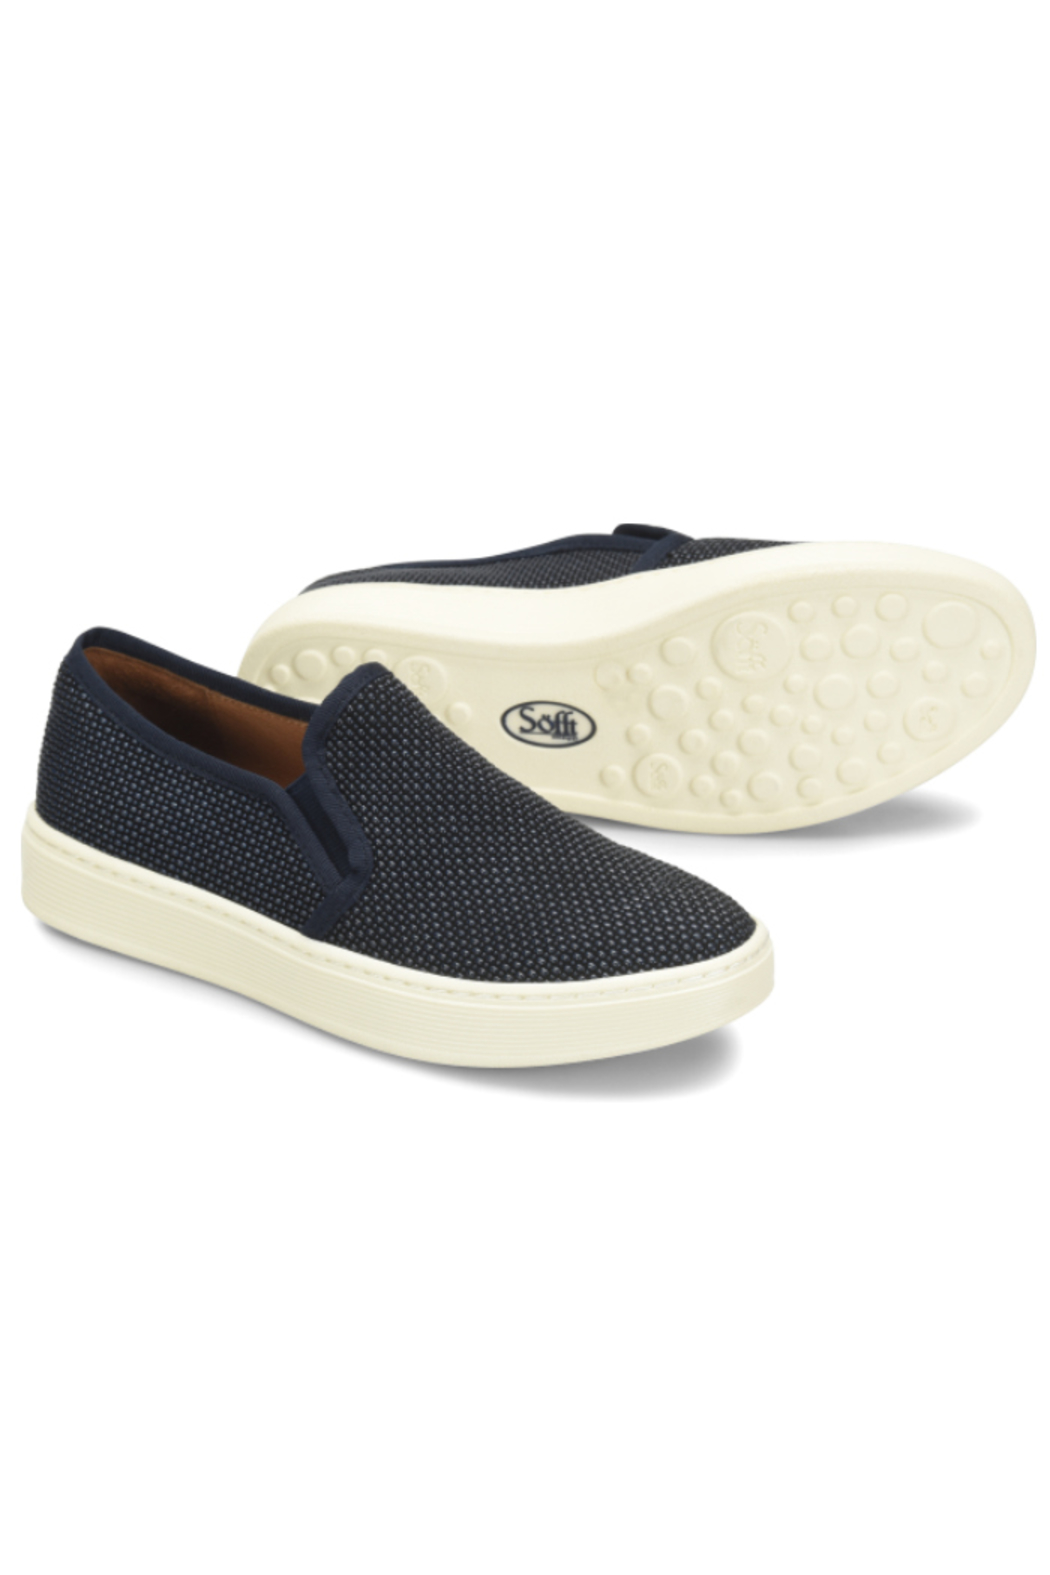 Sofft Women's Somers Slip-on - Front Cropped Image